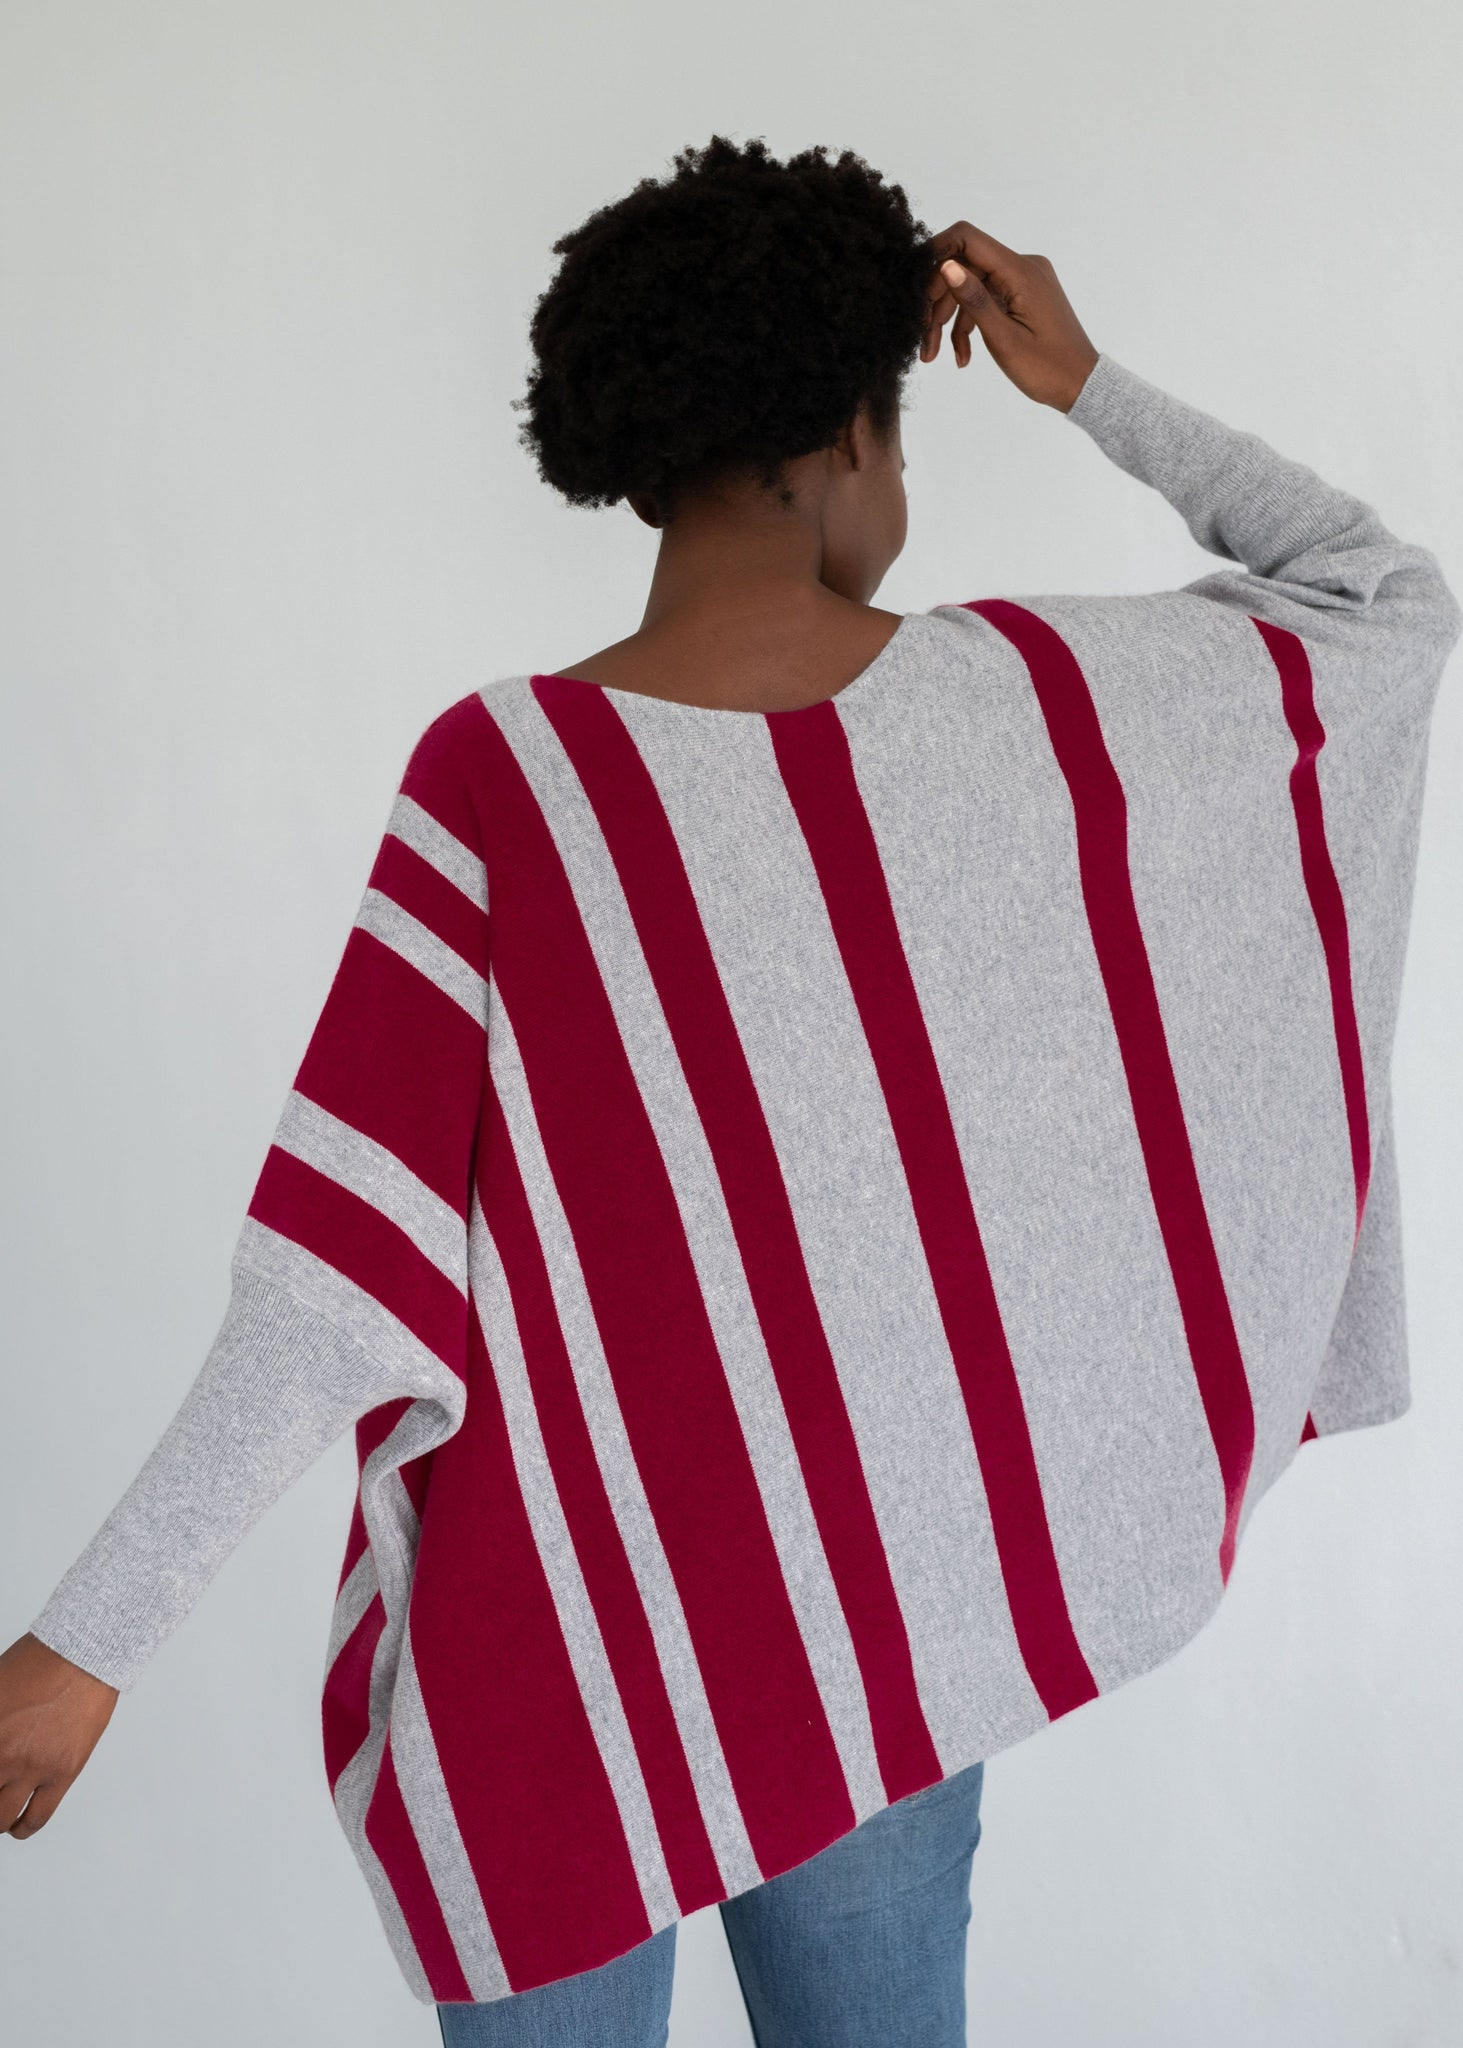 SAMIRA | Our oversize striped poncho